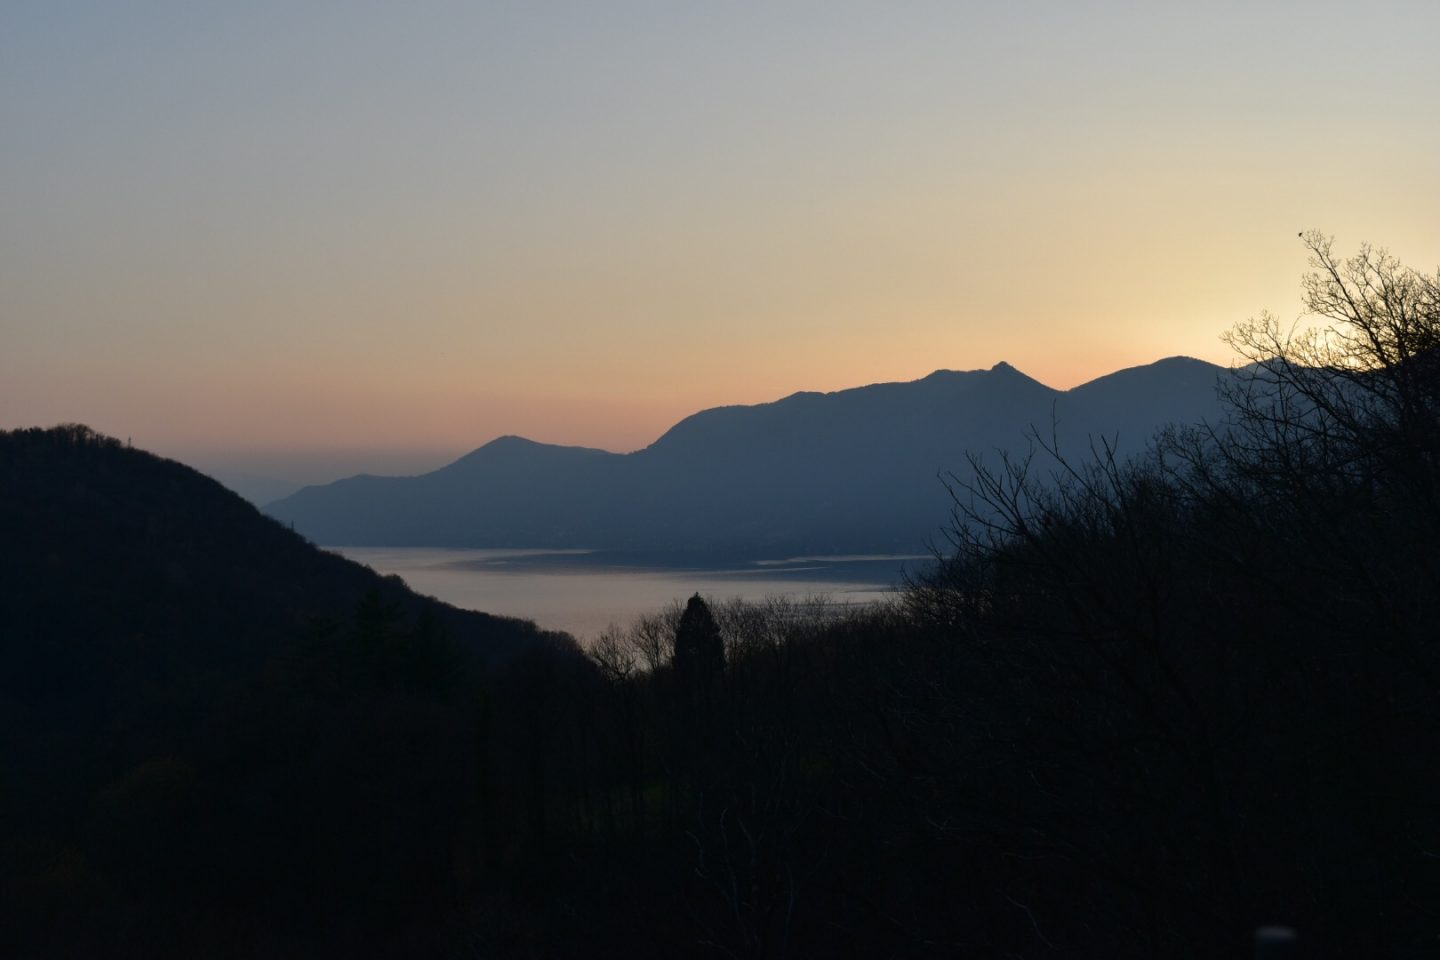 Review: A week in a luxury Villa on Lake Maggiore – with Bookings for You